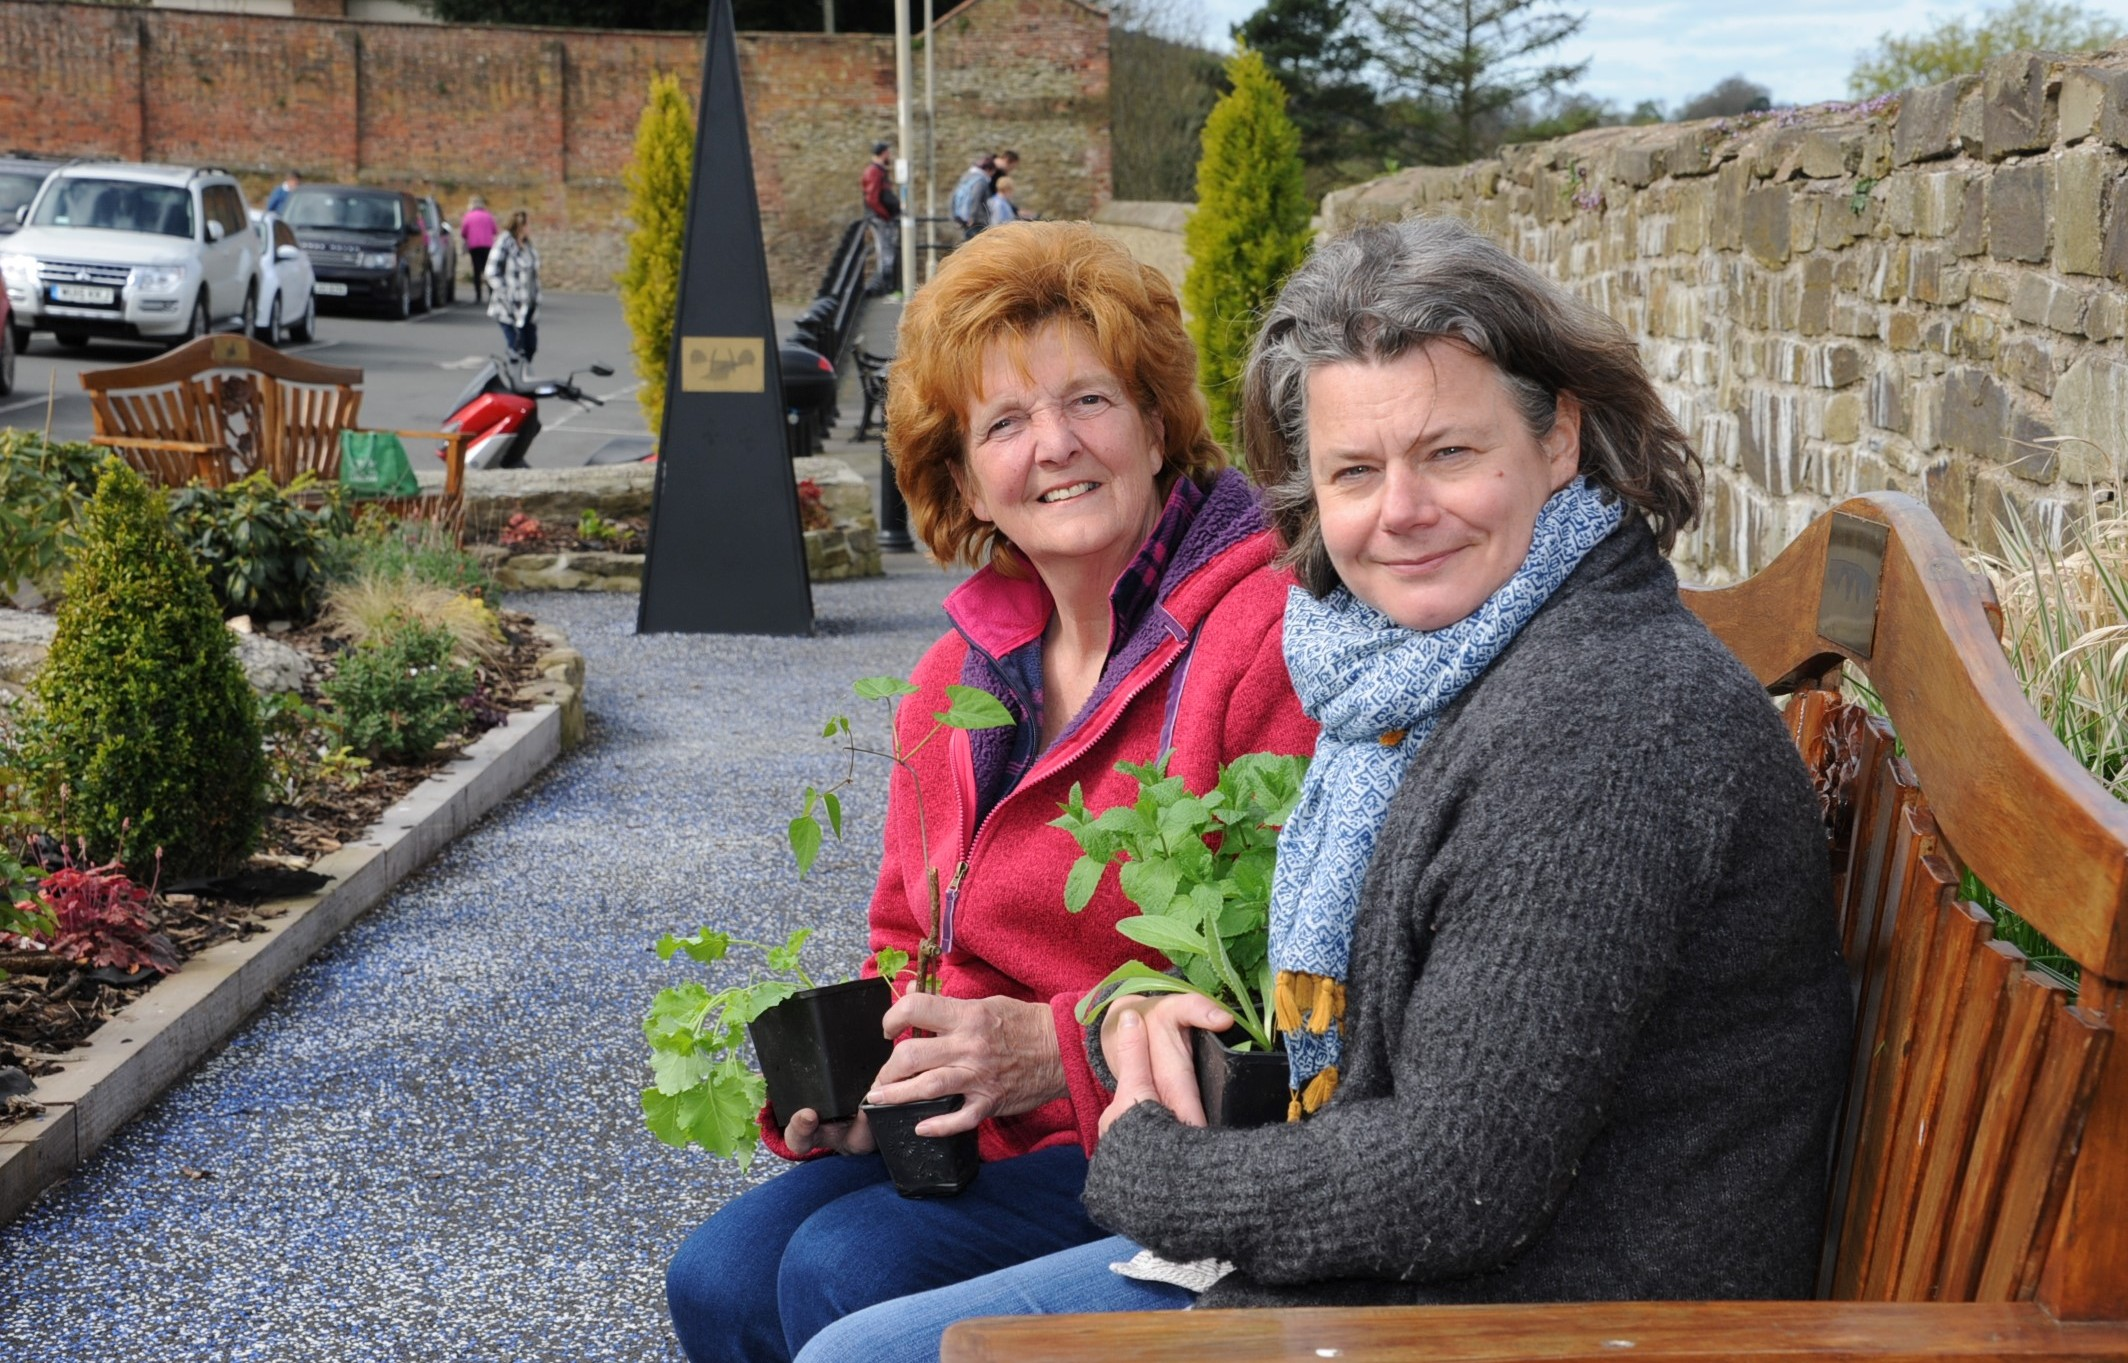 Vegetables in Bloom part of last year's Ludlow in Bloom campaign...Vivienne Parry (Chairman, Ludlow in Bloom) with Tish Marsh (Chairman, Incredible Edible) with some vegetable plants in the town centre car park.